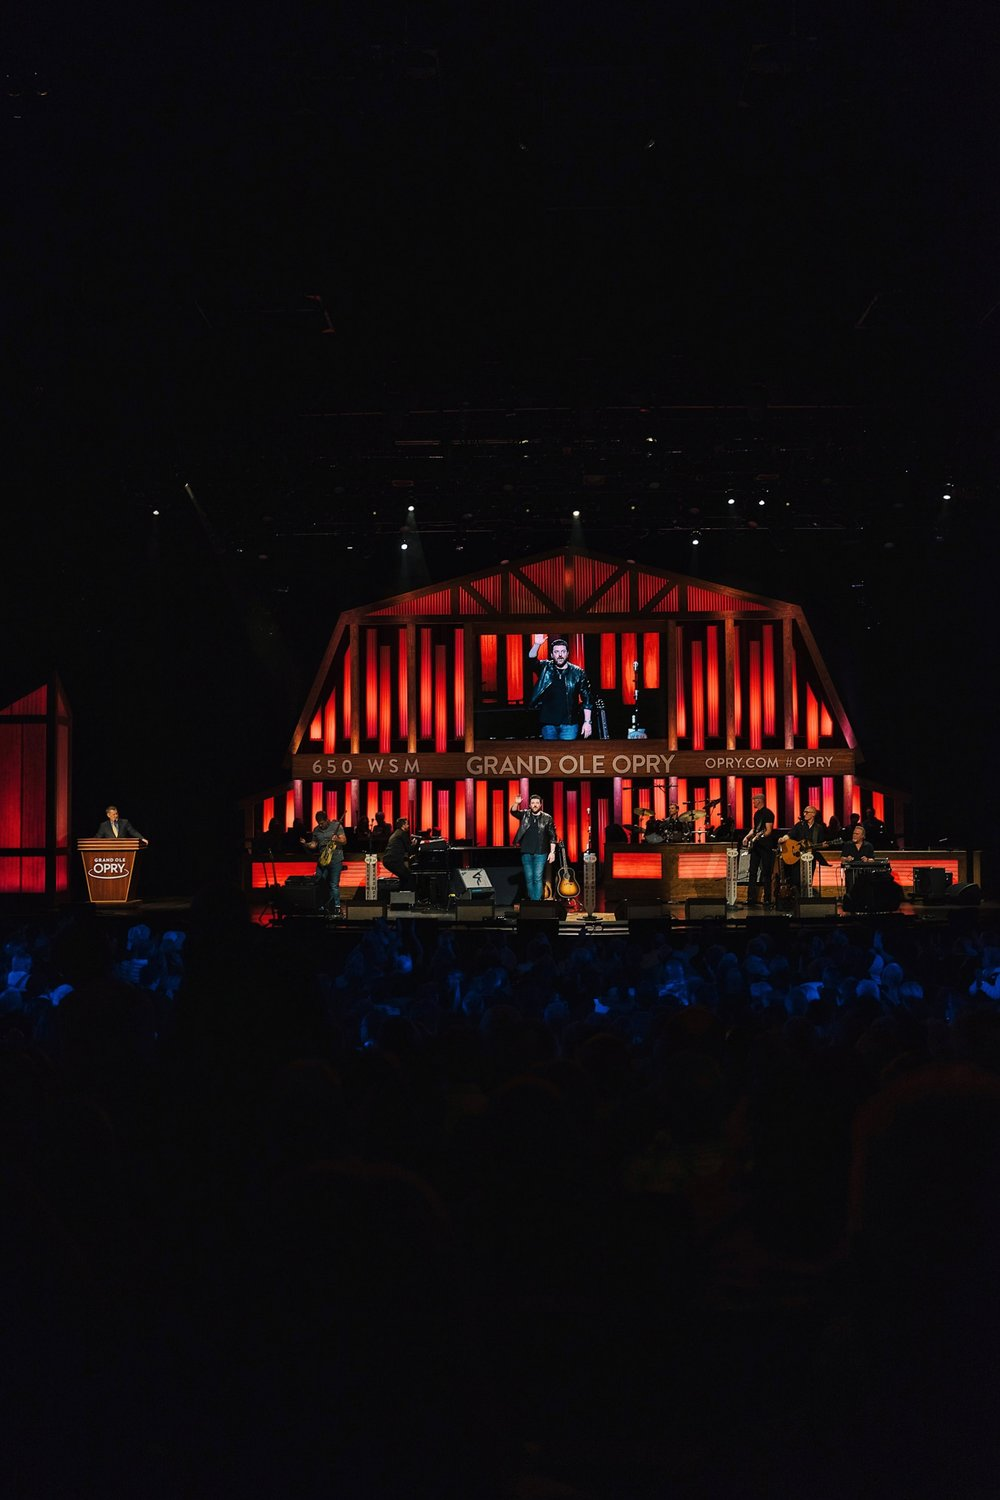 Chris Young performing at the Grand Ole Opry in Nashville